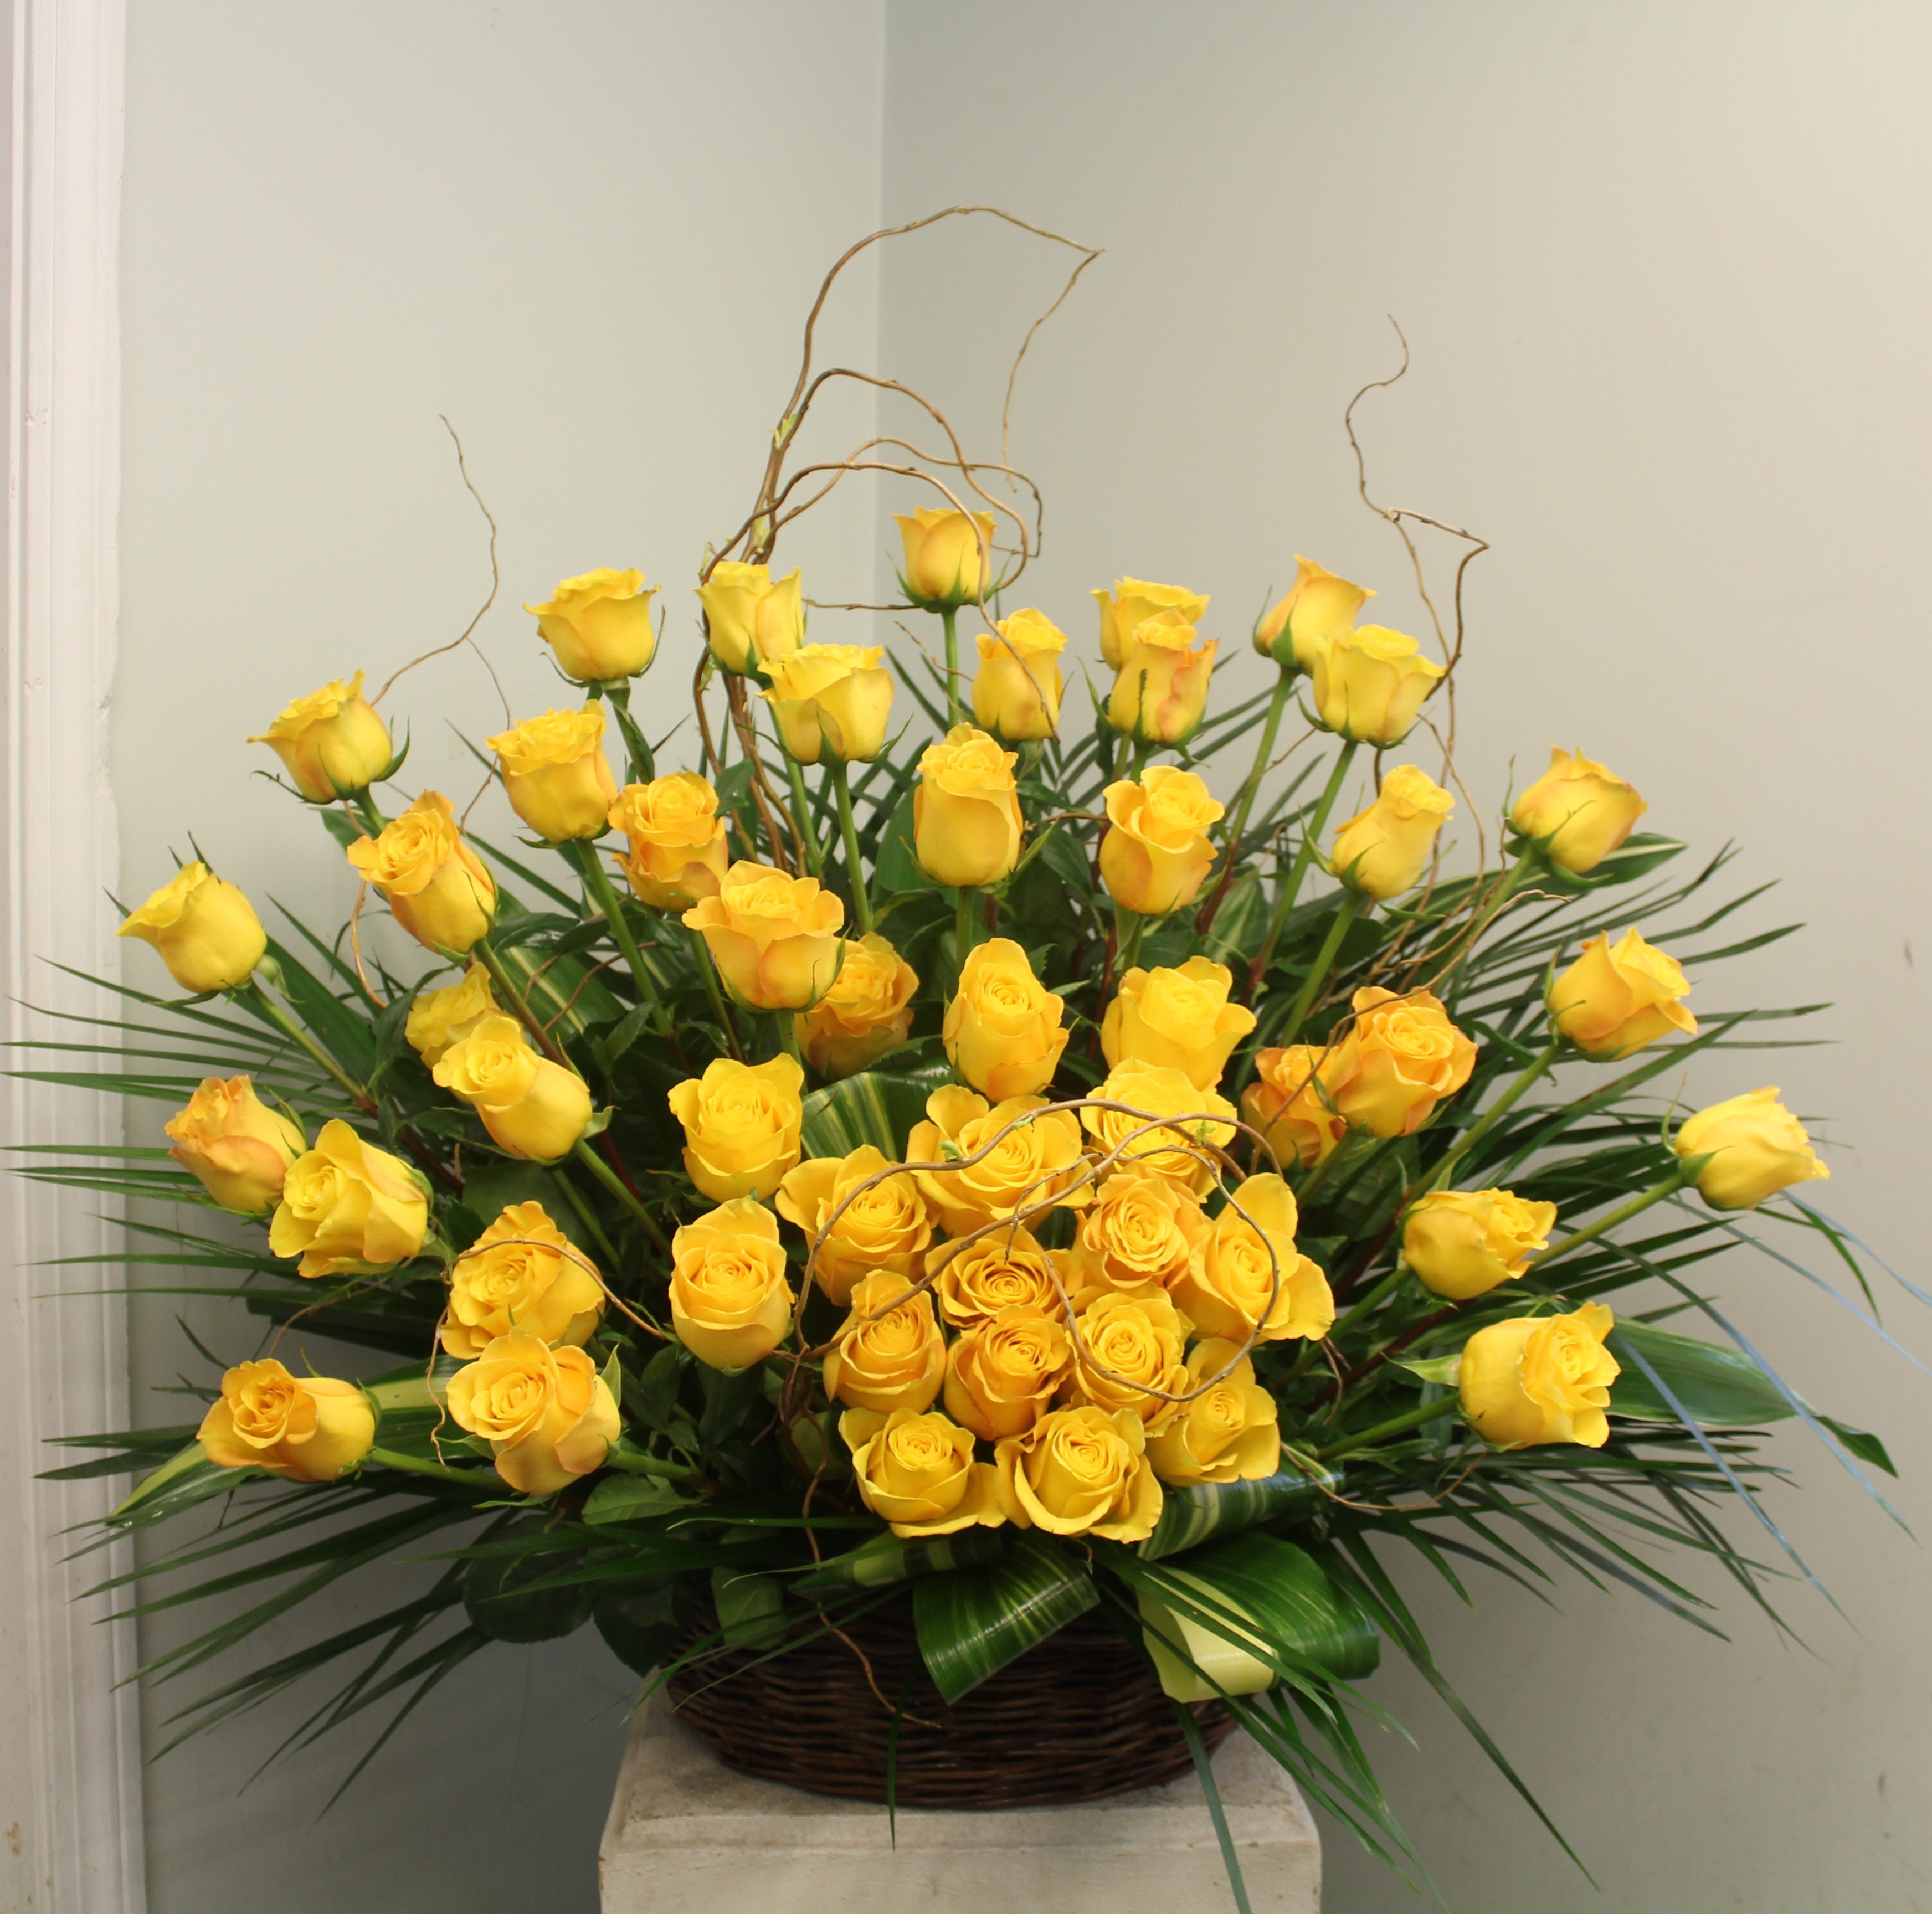 Evans Yellow Rose Wicker Funeral Basket in Peabody, MA | Evans Flowers